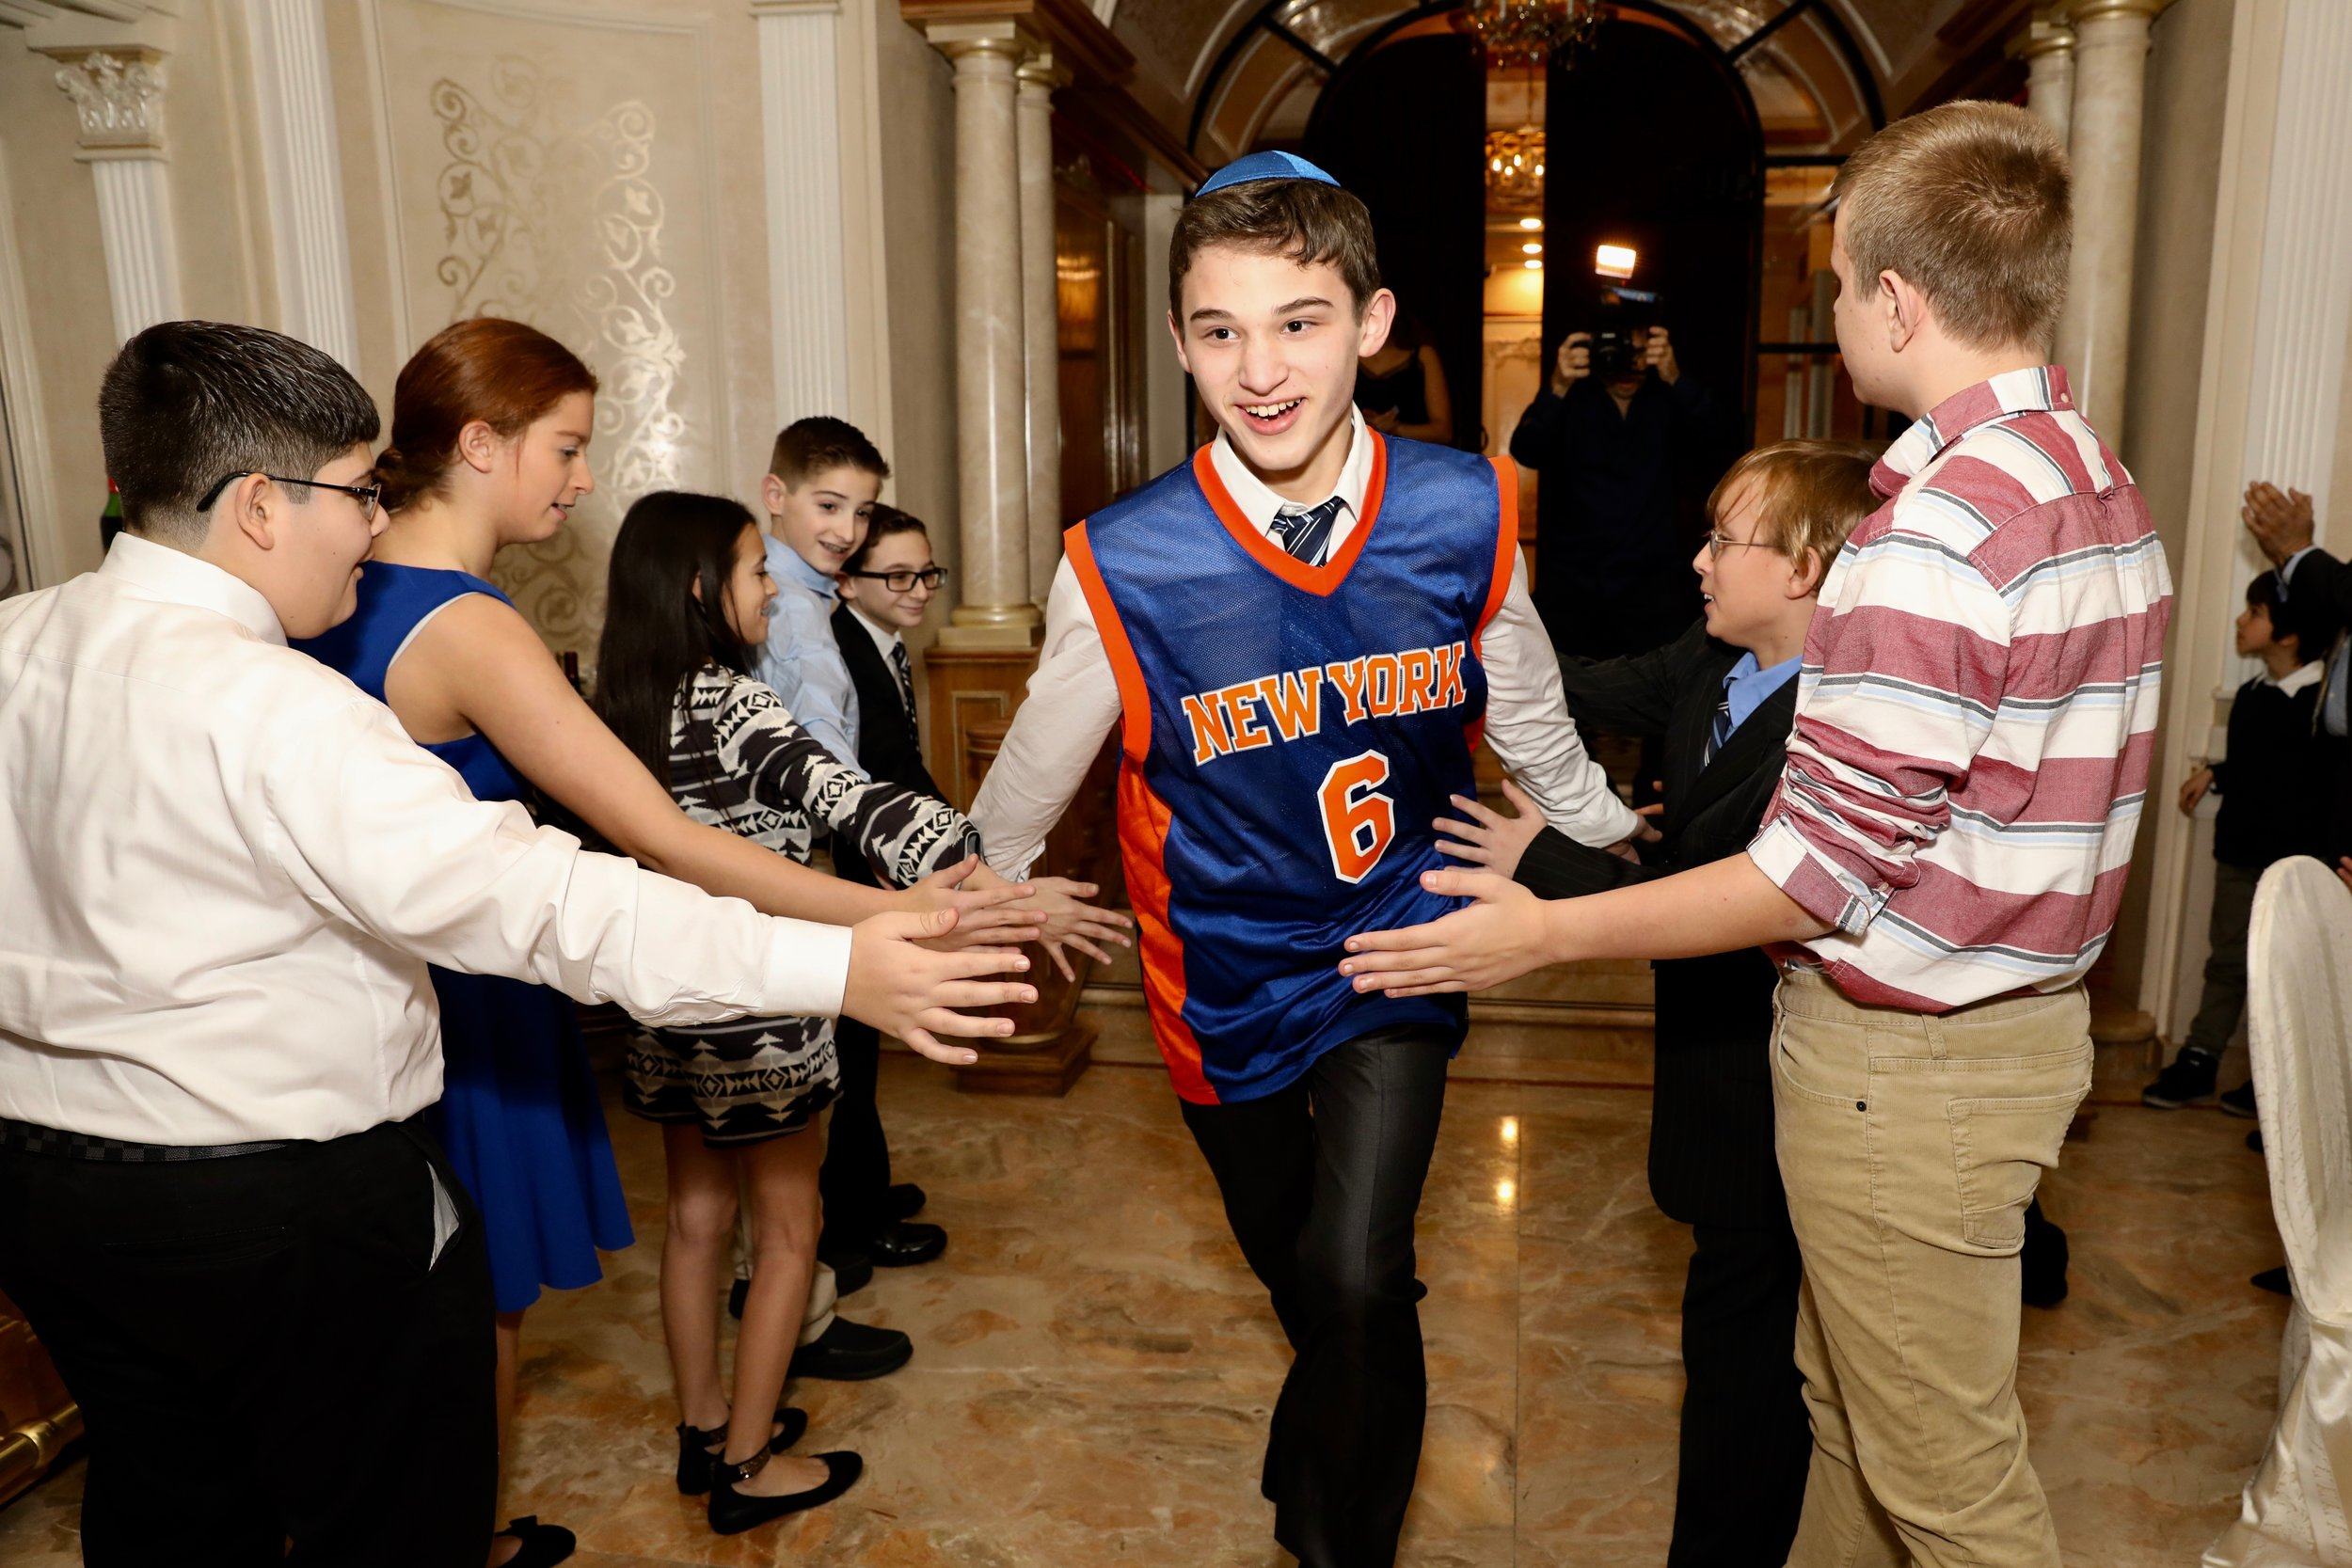 Bar Mitzvah Celebration at Jericho Terrace, New York